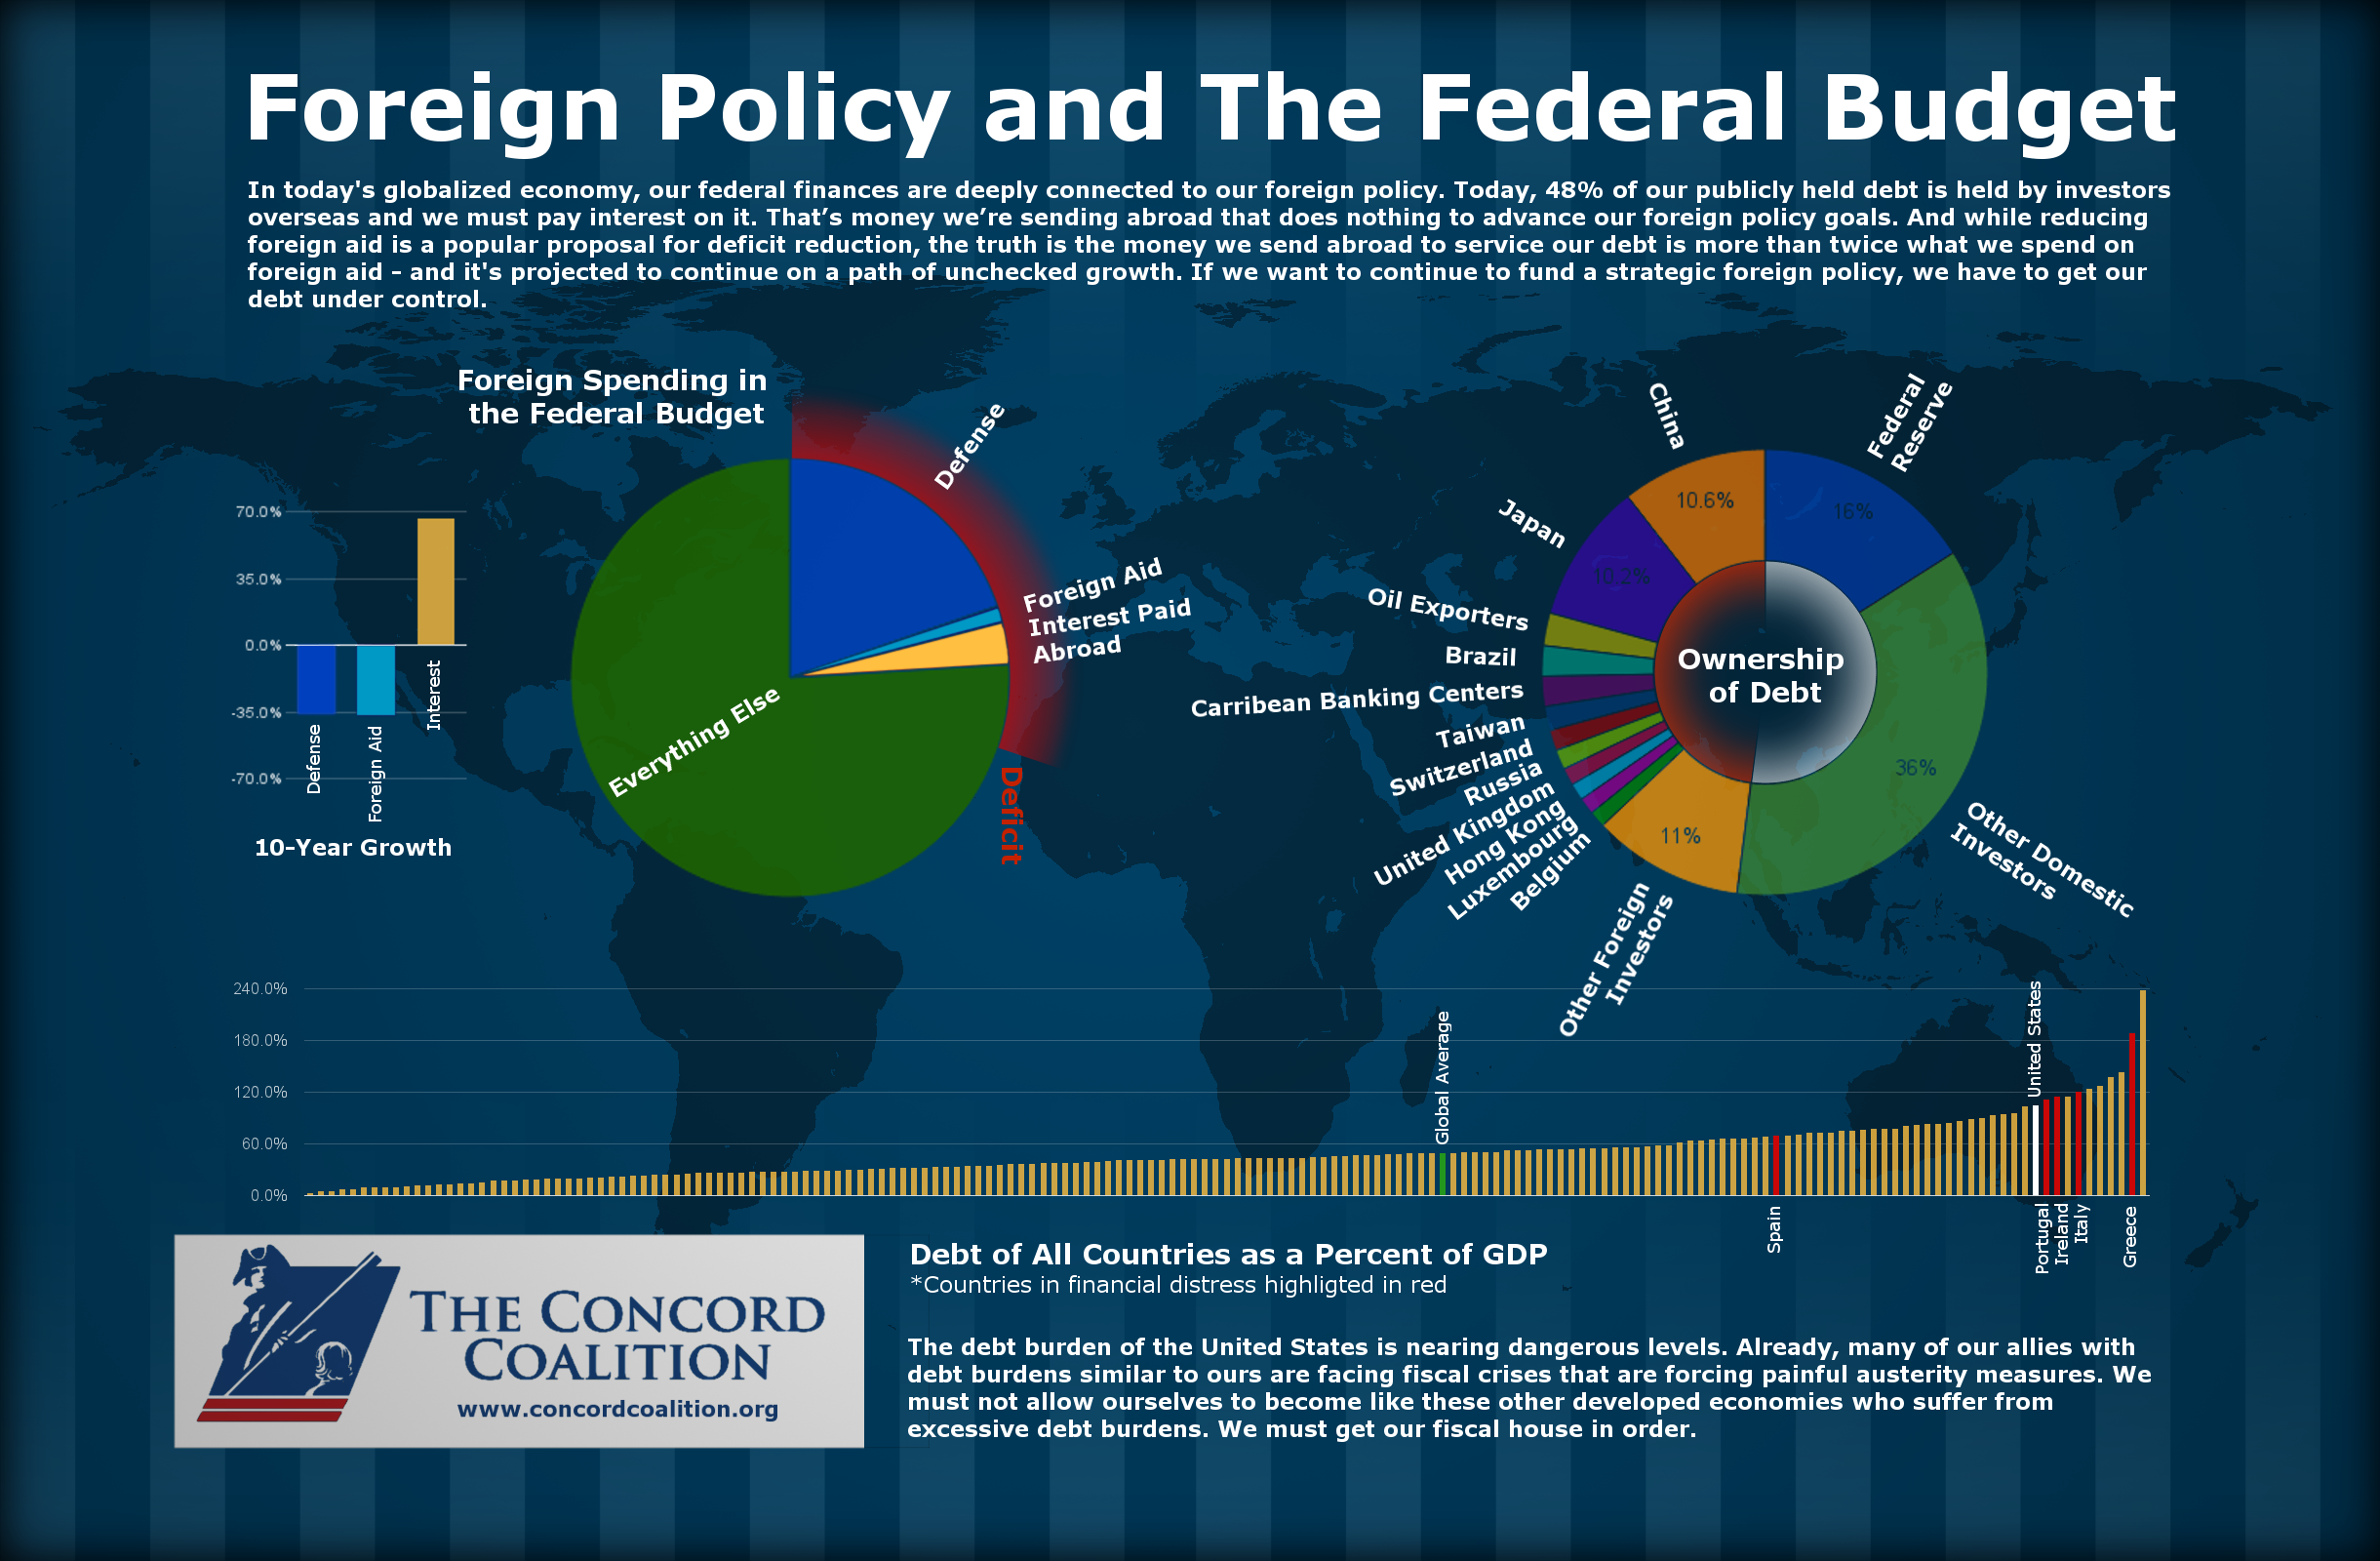 Foreign Policy and The Federal Budget: 48% of our publicly held debt is held by overseas investors.